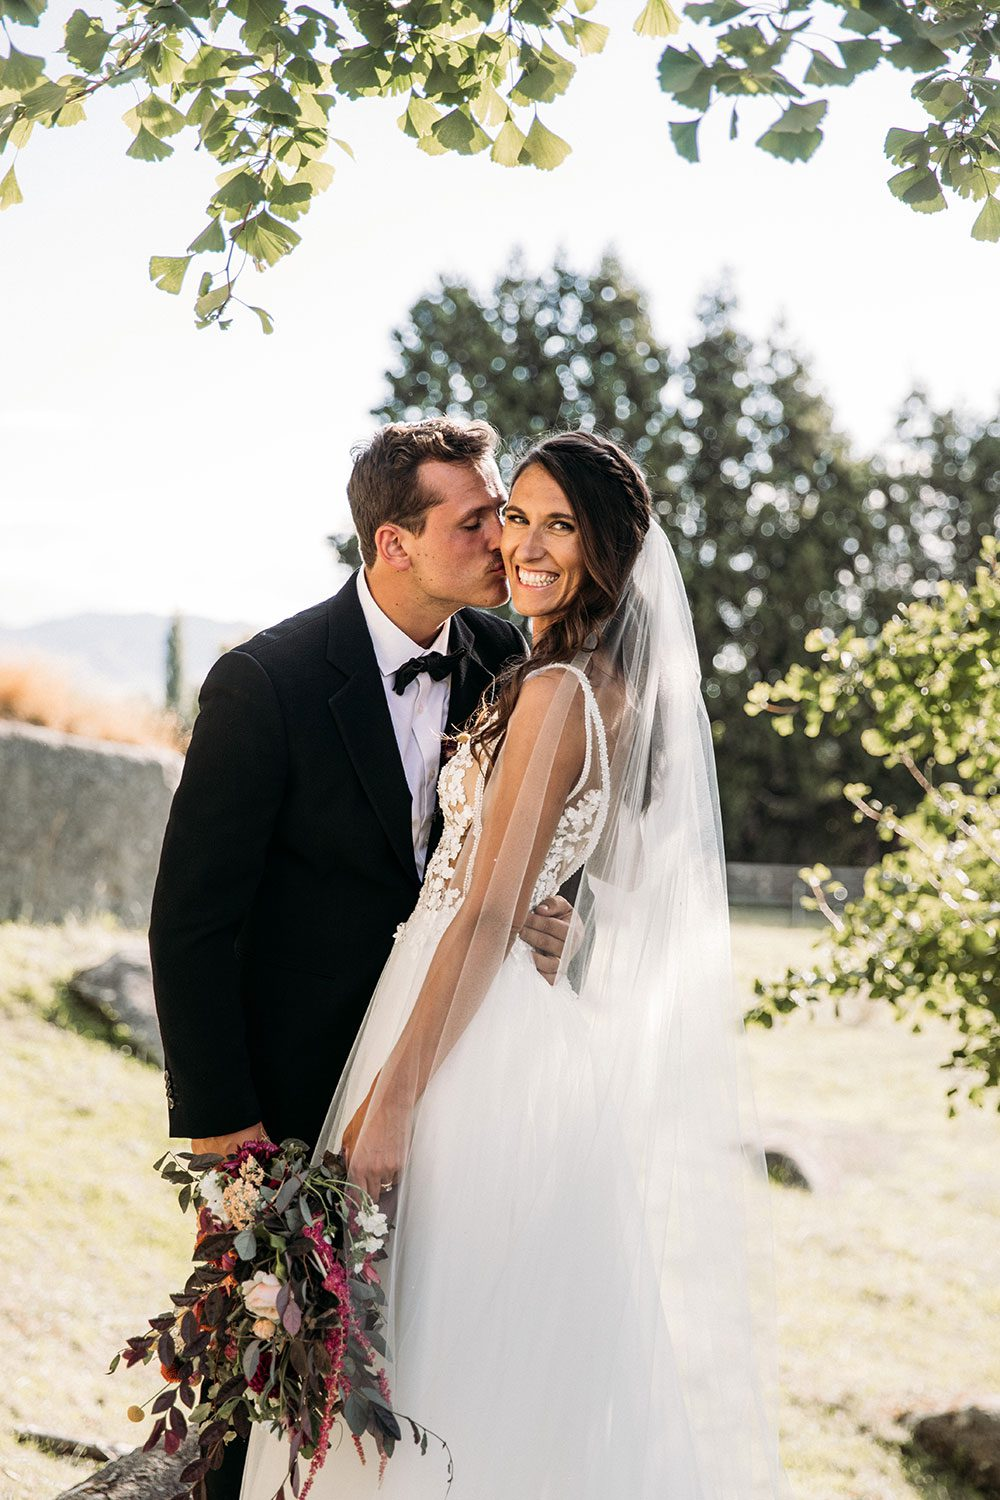 Bride wearing Vinka bridal boutique Isabelle tulle gown with sheer v neck bodice and beaded lace - with groom embrace under leaves